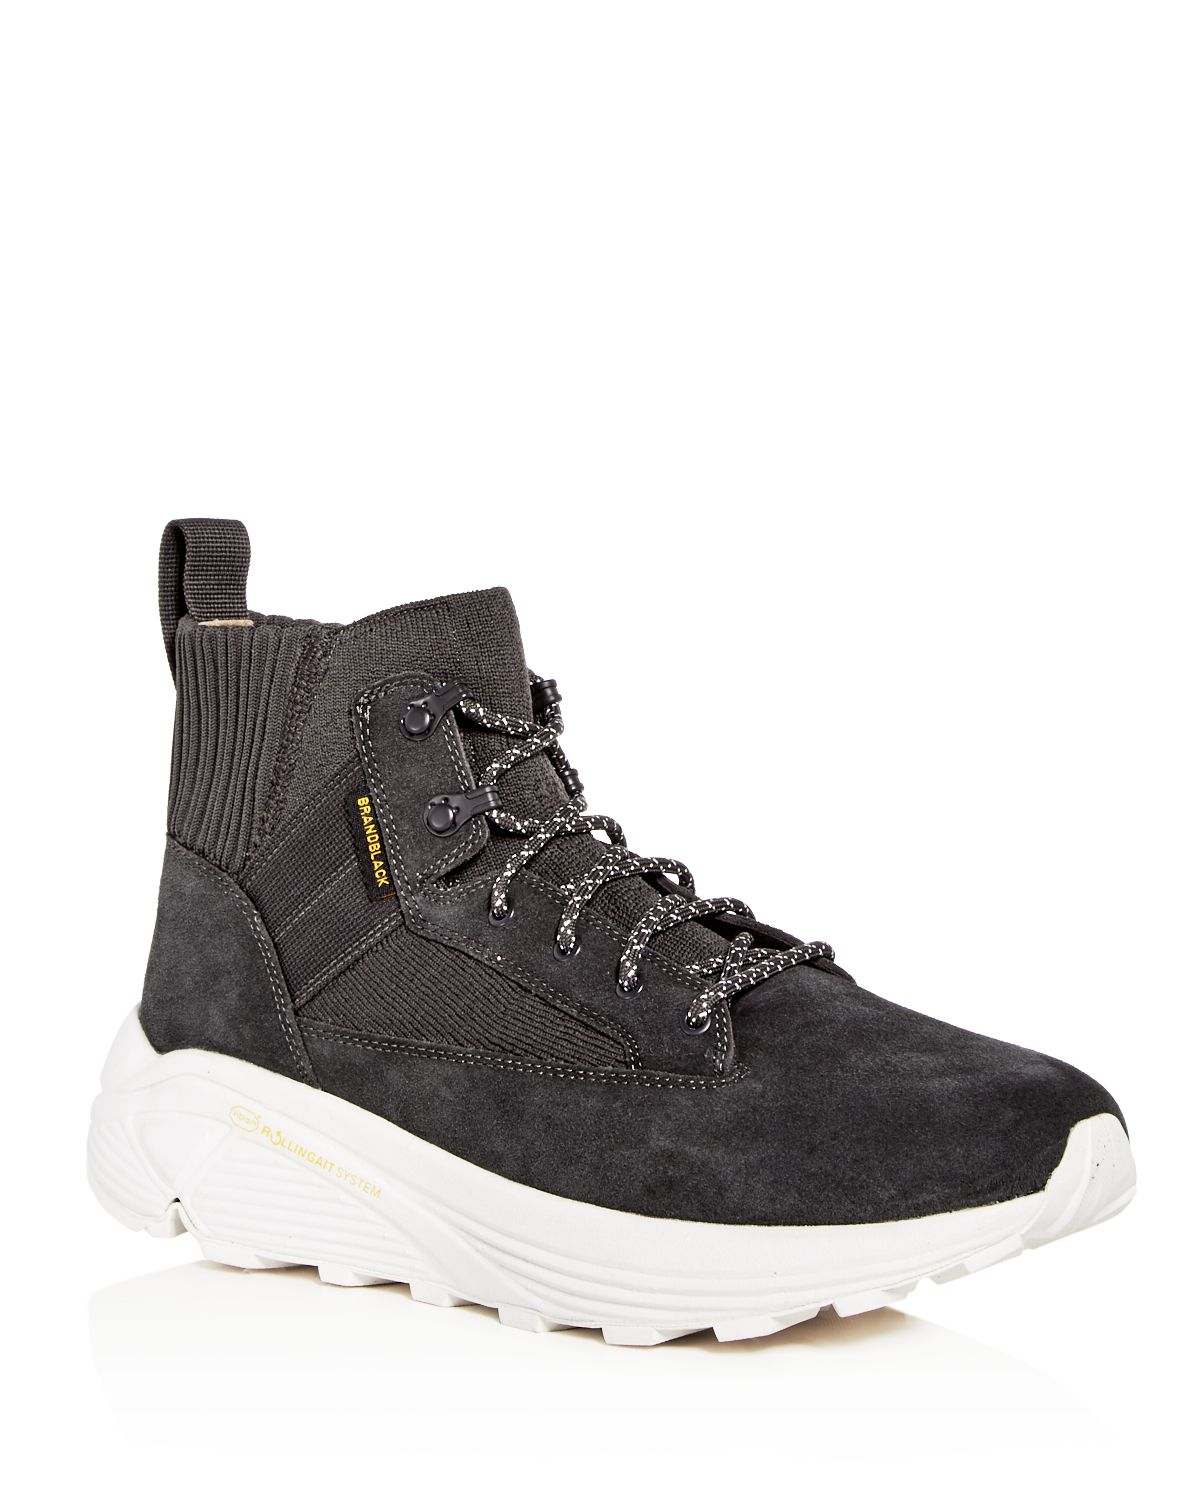 BRANDBLACK Men's Mil Spec Hiker Suede & Knit High Top Sneakers